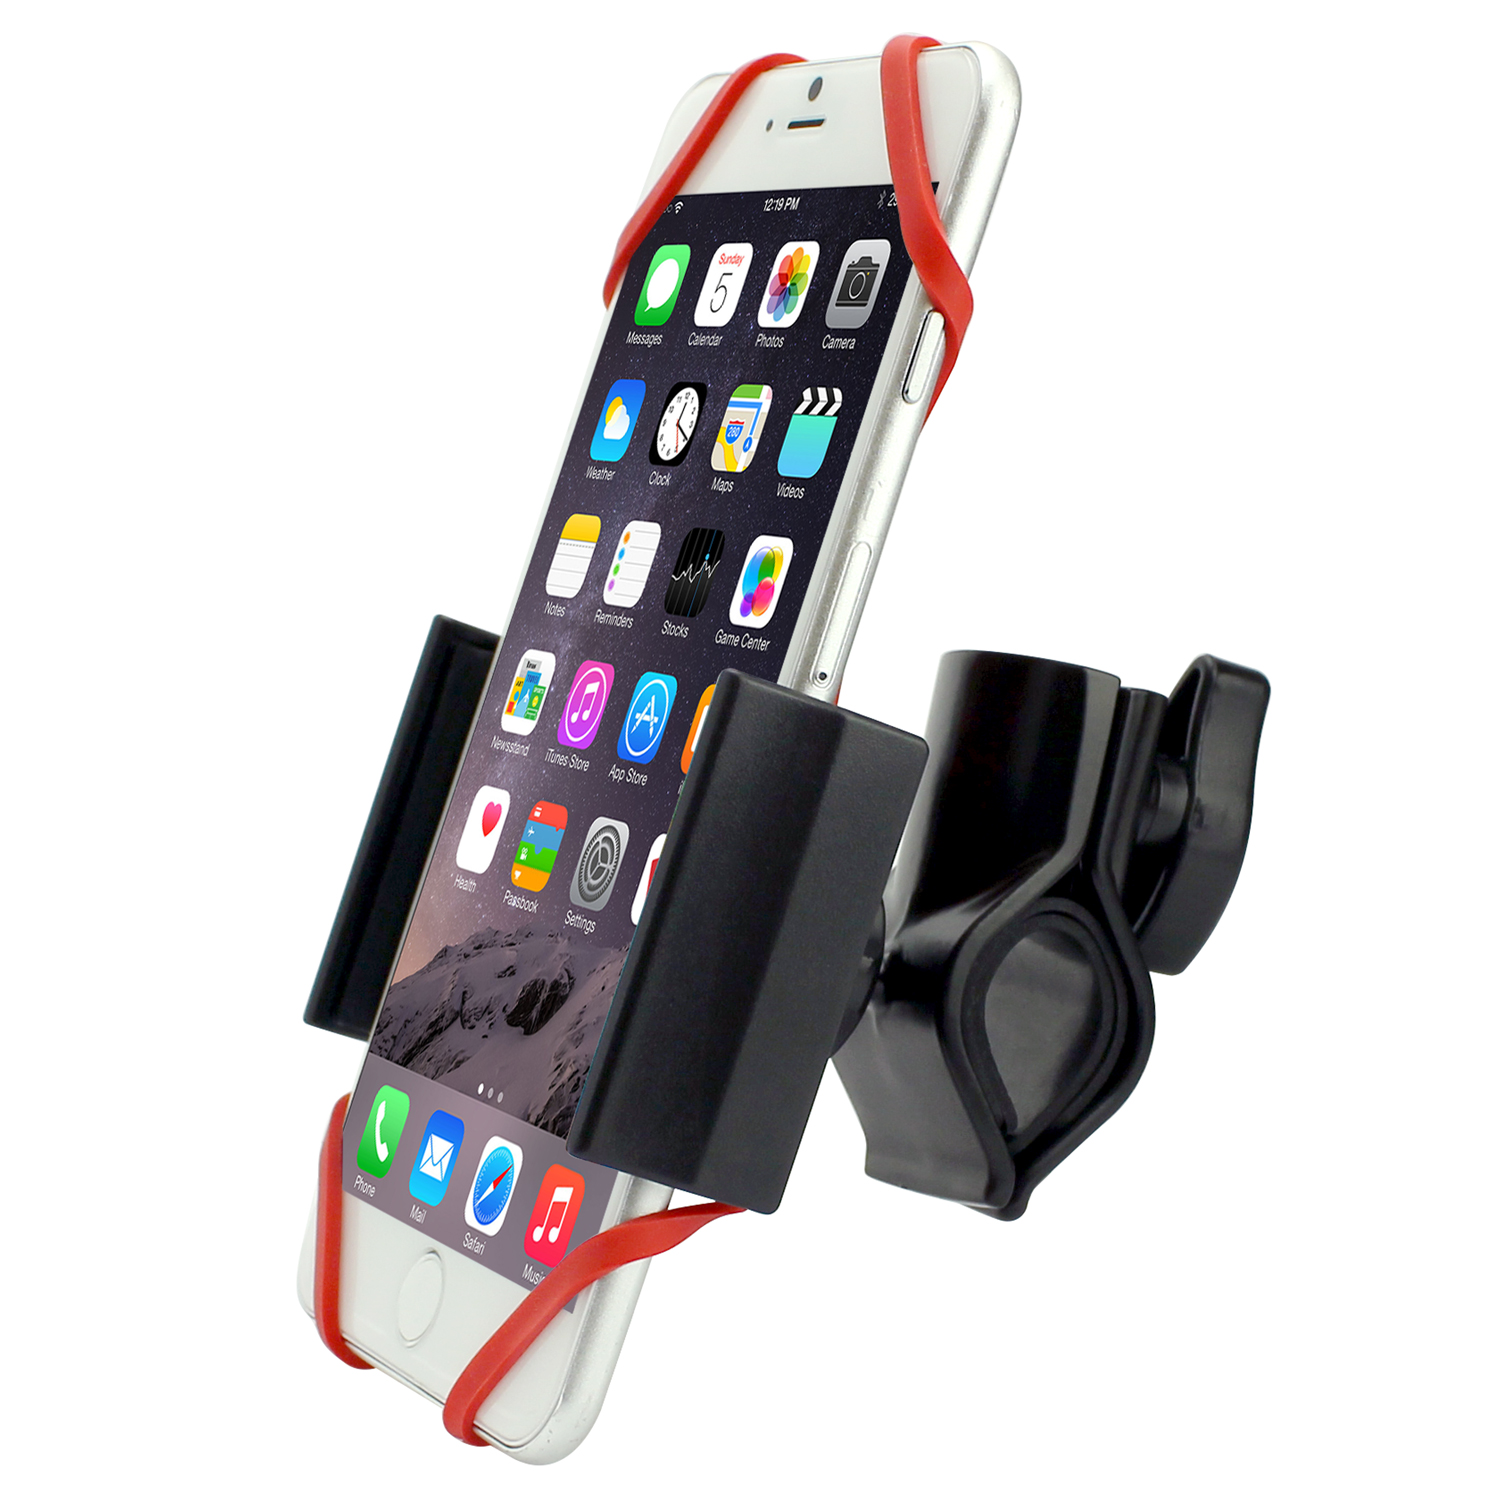 Nokia Lumia 635 Bike Phone Mount Adjustable Black